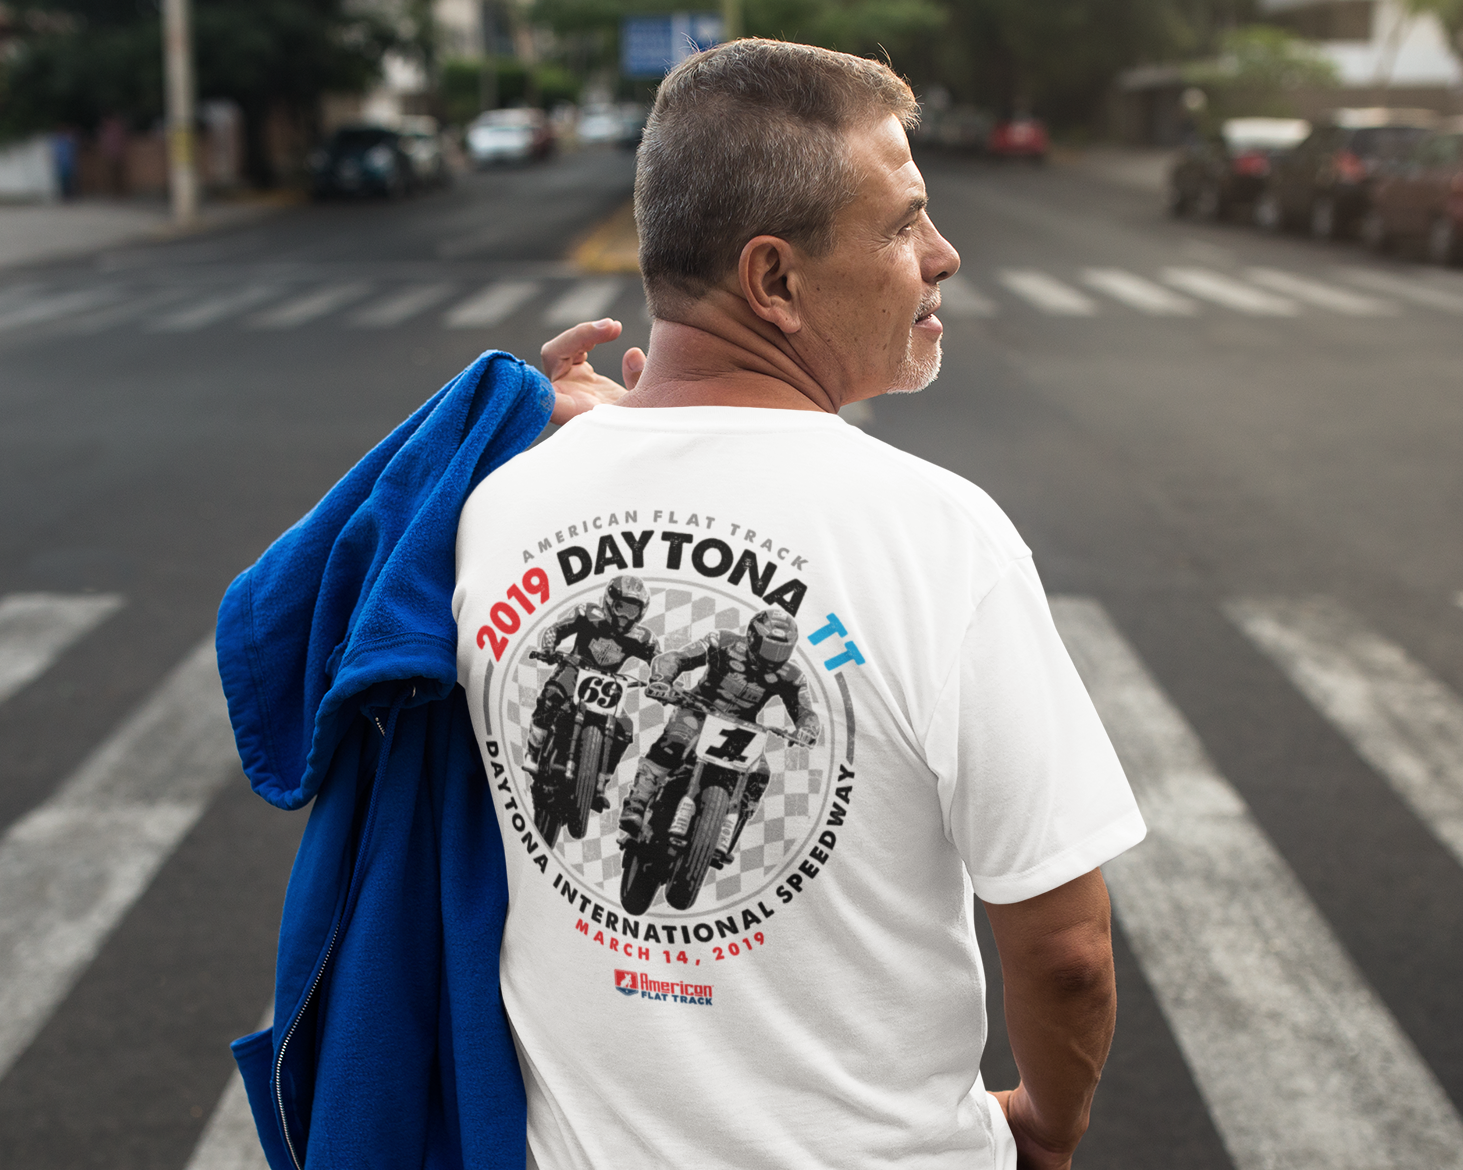 2019 Daytona TT White Event T-Shirt